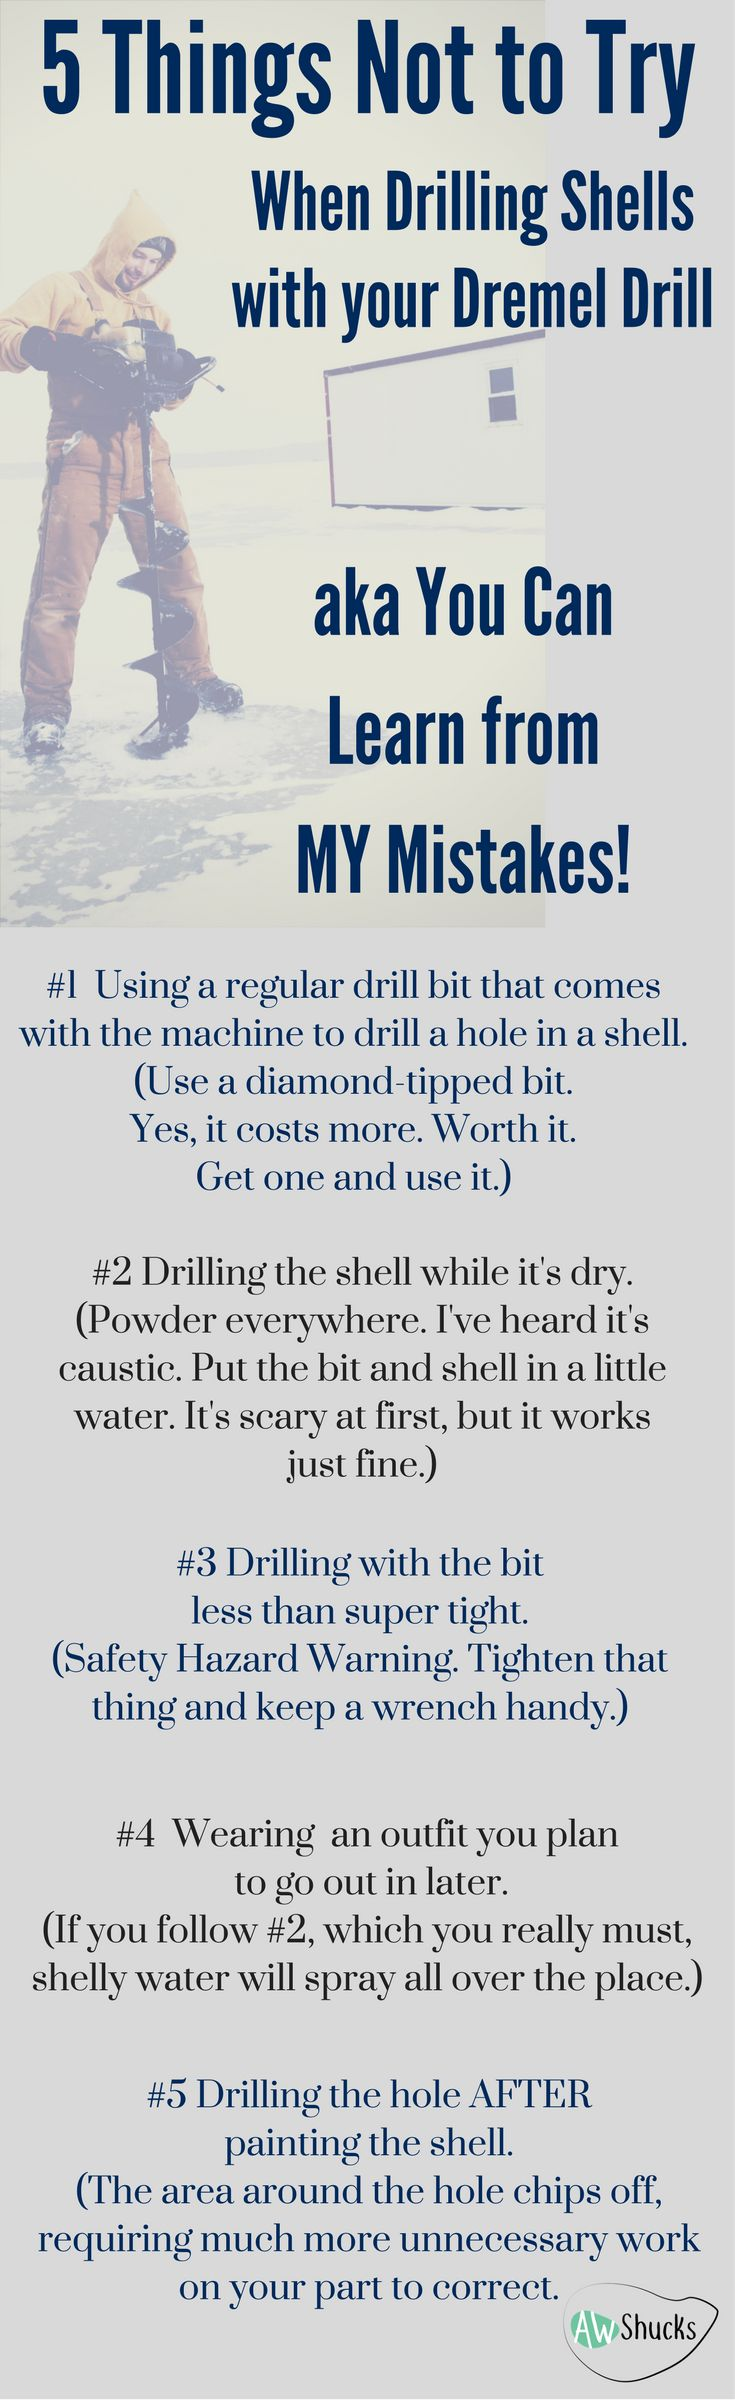 I'm a newbie at a lot of things these days, one being learning how to best use my Dremel drill to drill holes in my oyster shells. Here's an infographic on what NOT to do. Enjoy!